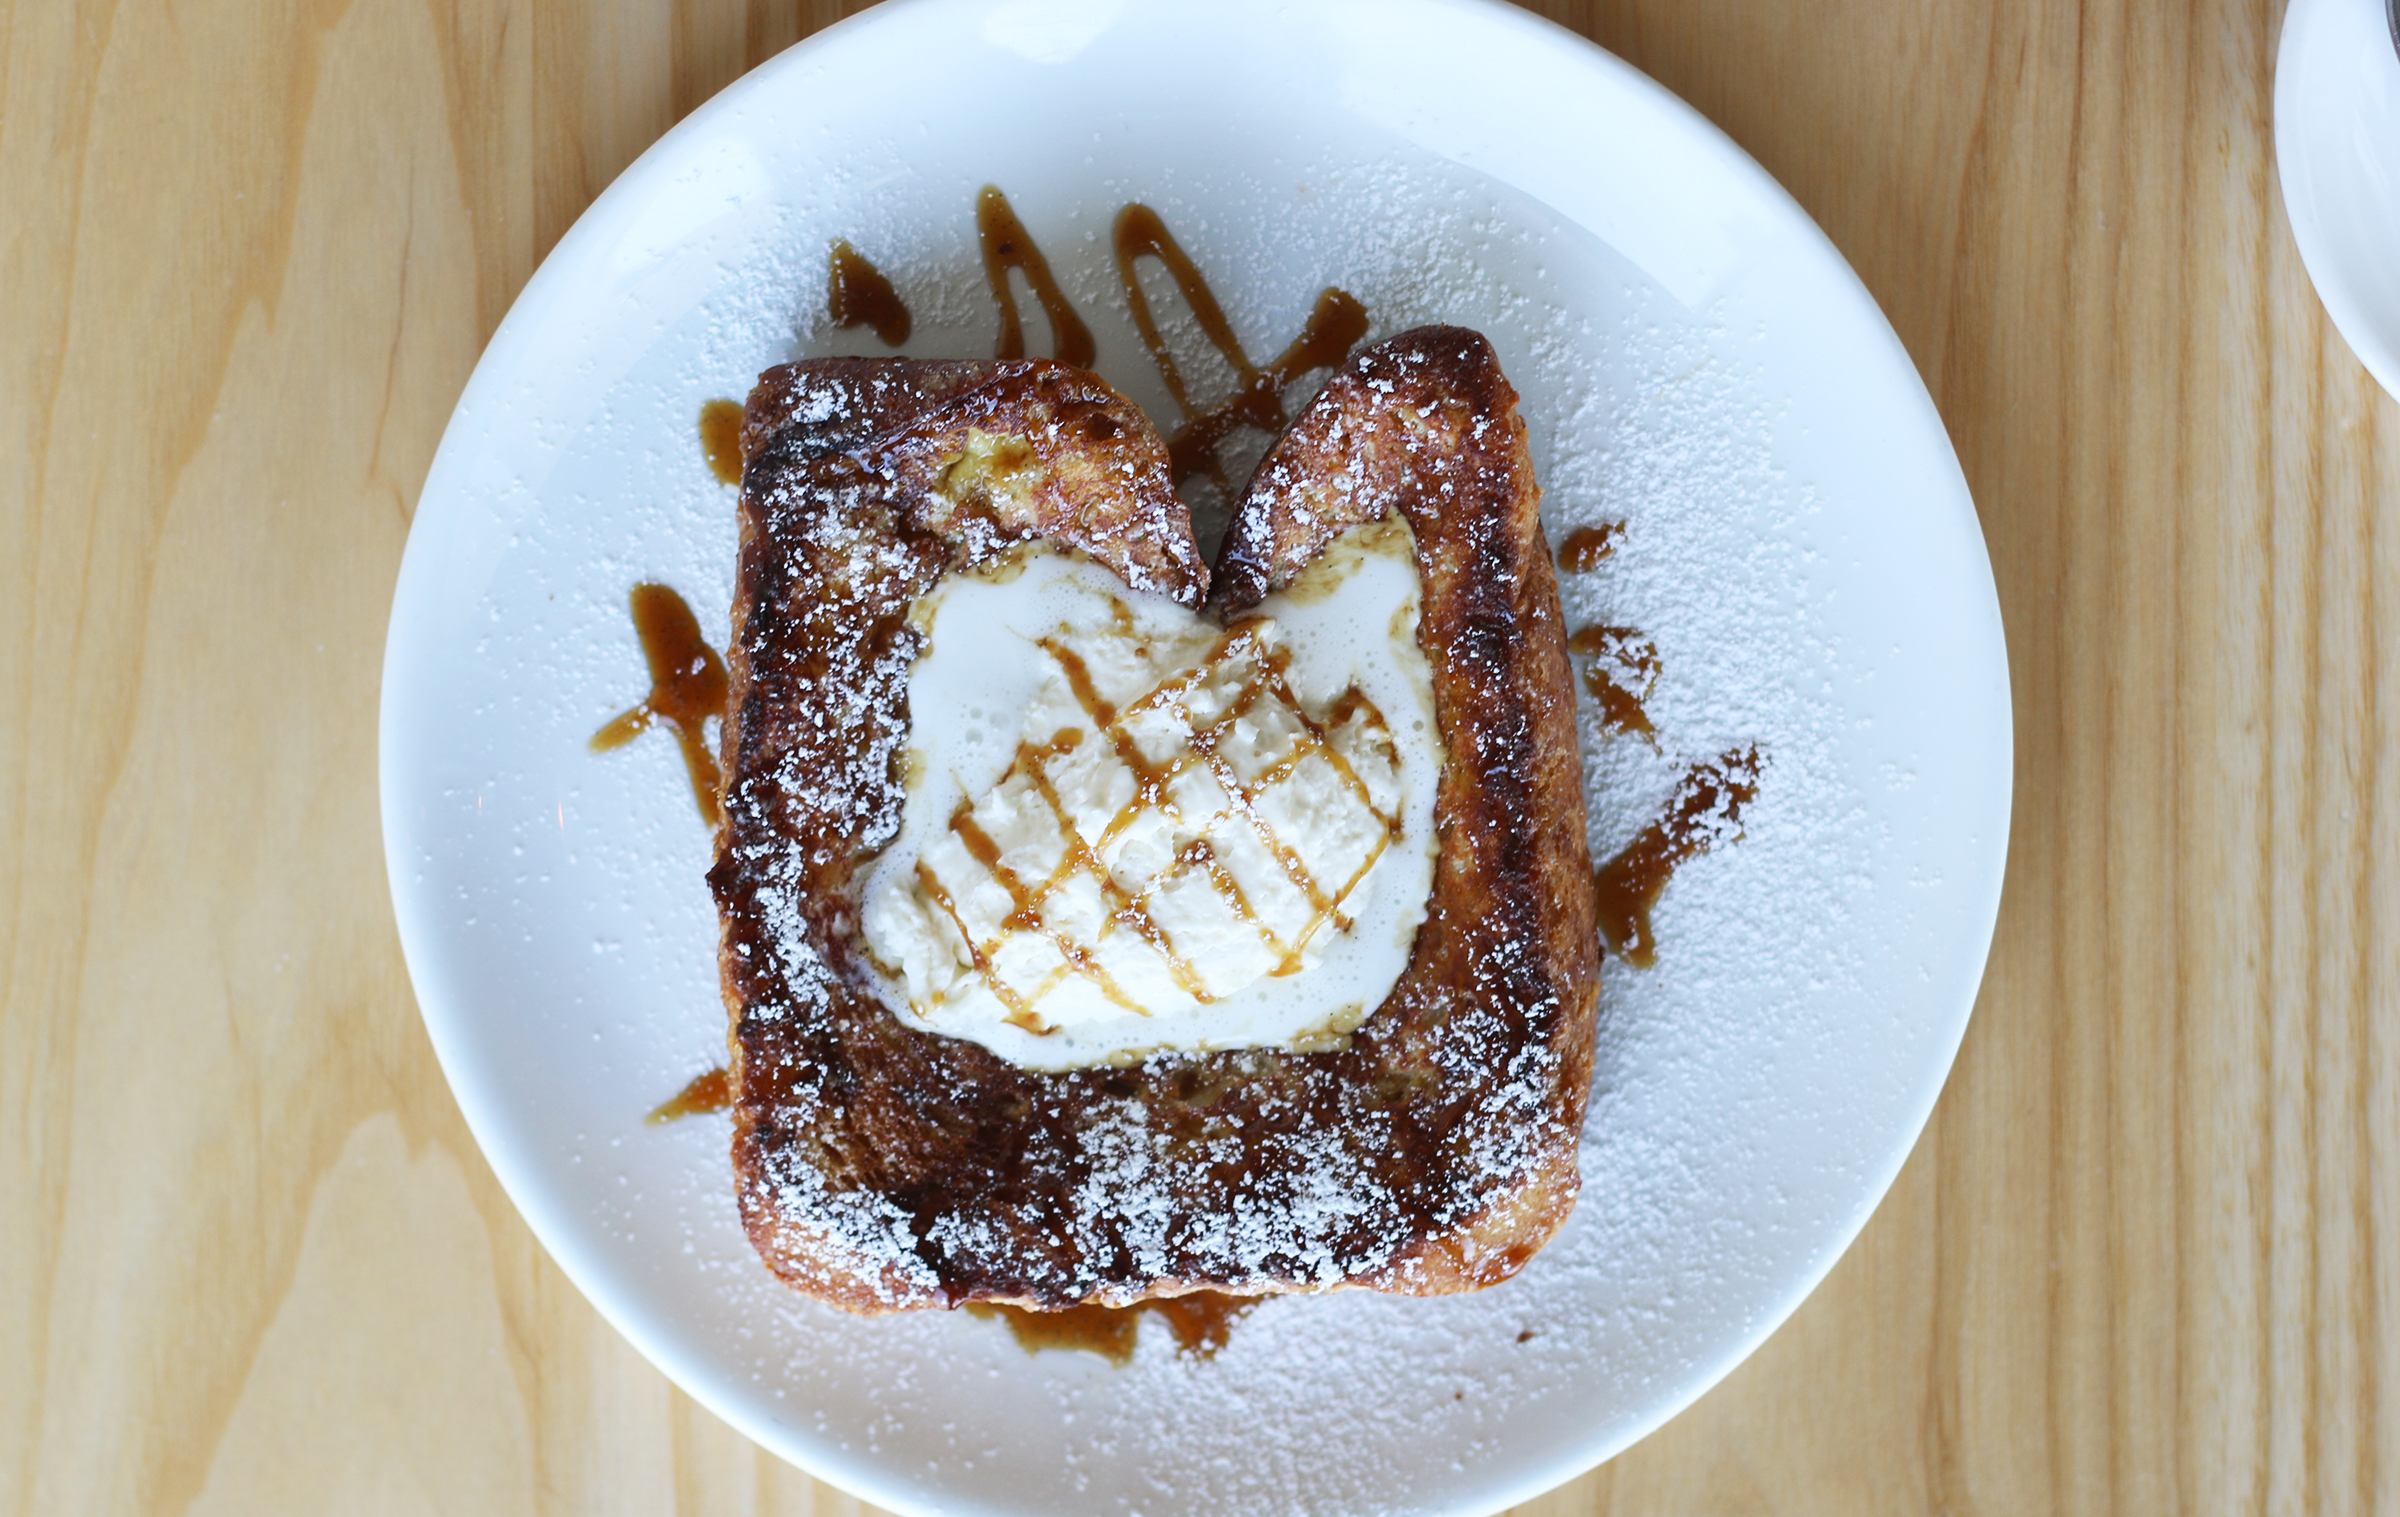 COCONUT PANDAN FRENCH TOAST macadamia nuts, crusoe rum butter, coconut chantilly cream